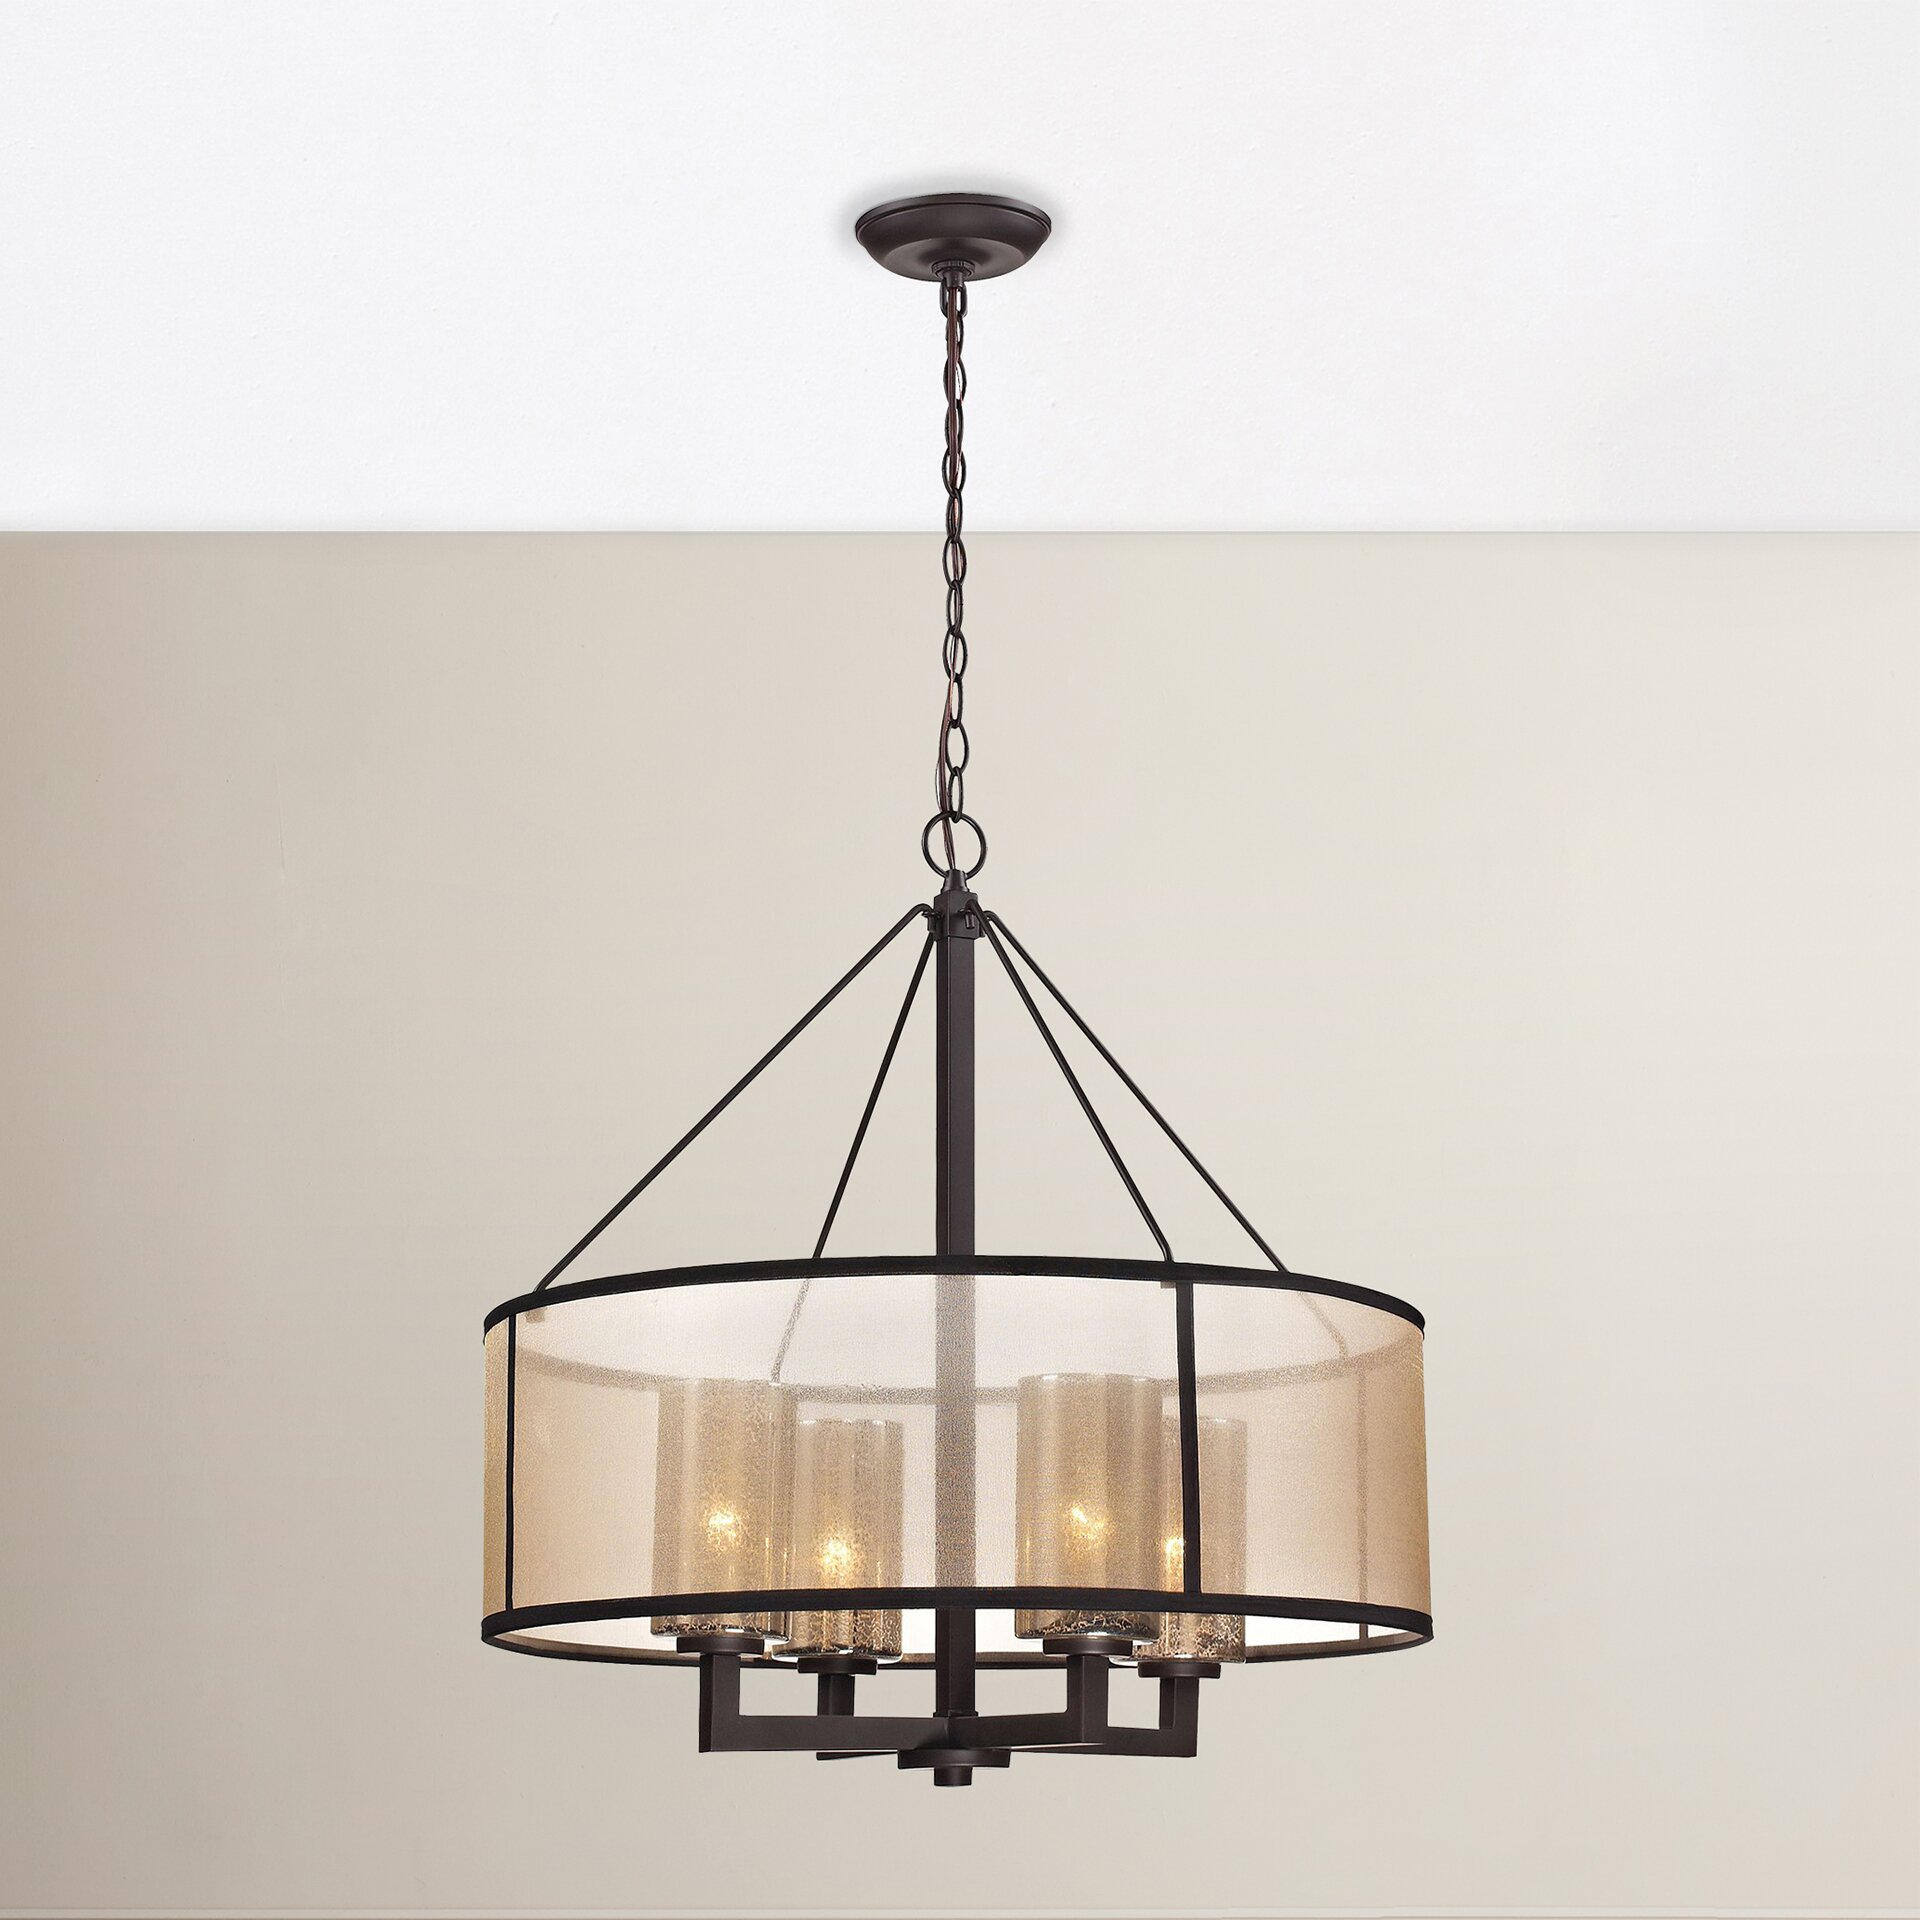 Brayden studio dailey 4 light drum chandelier reviews wayfair - Lights and chandeliers ...